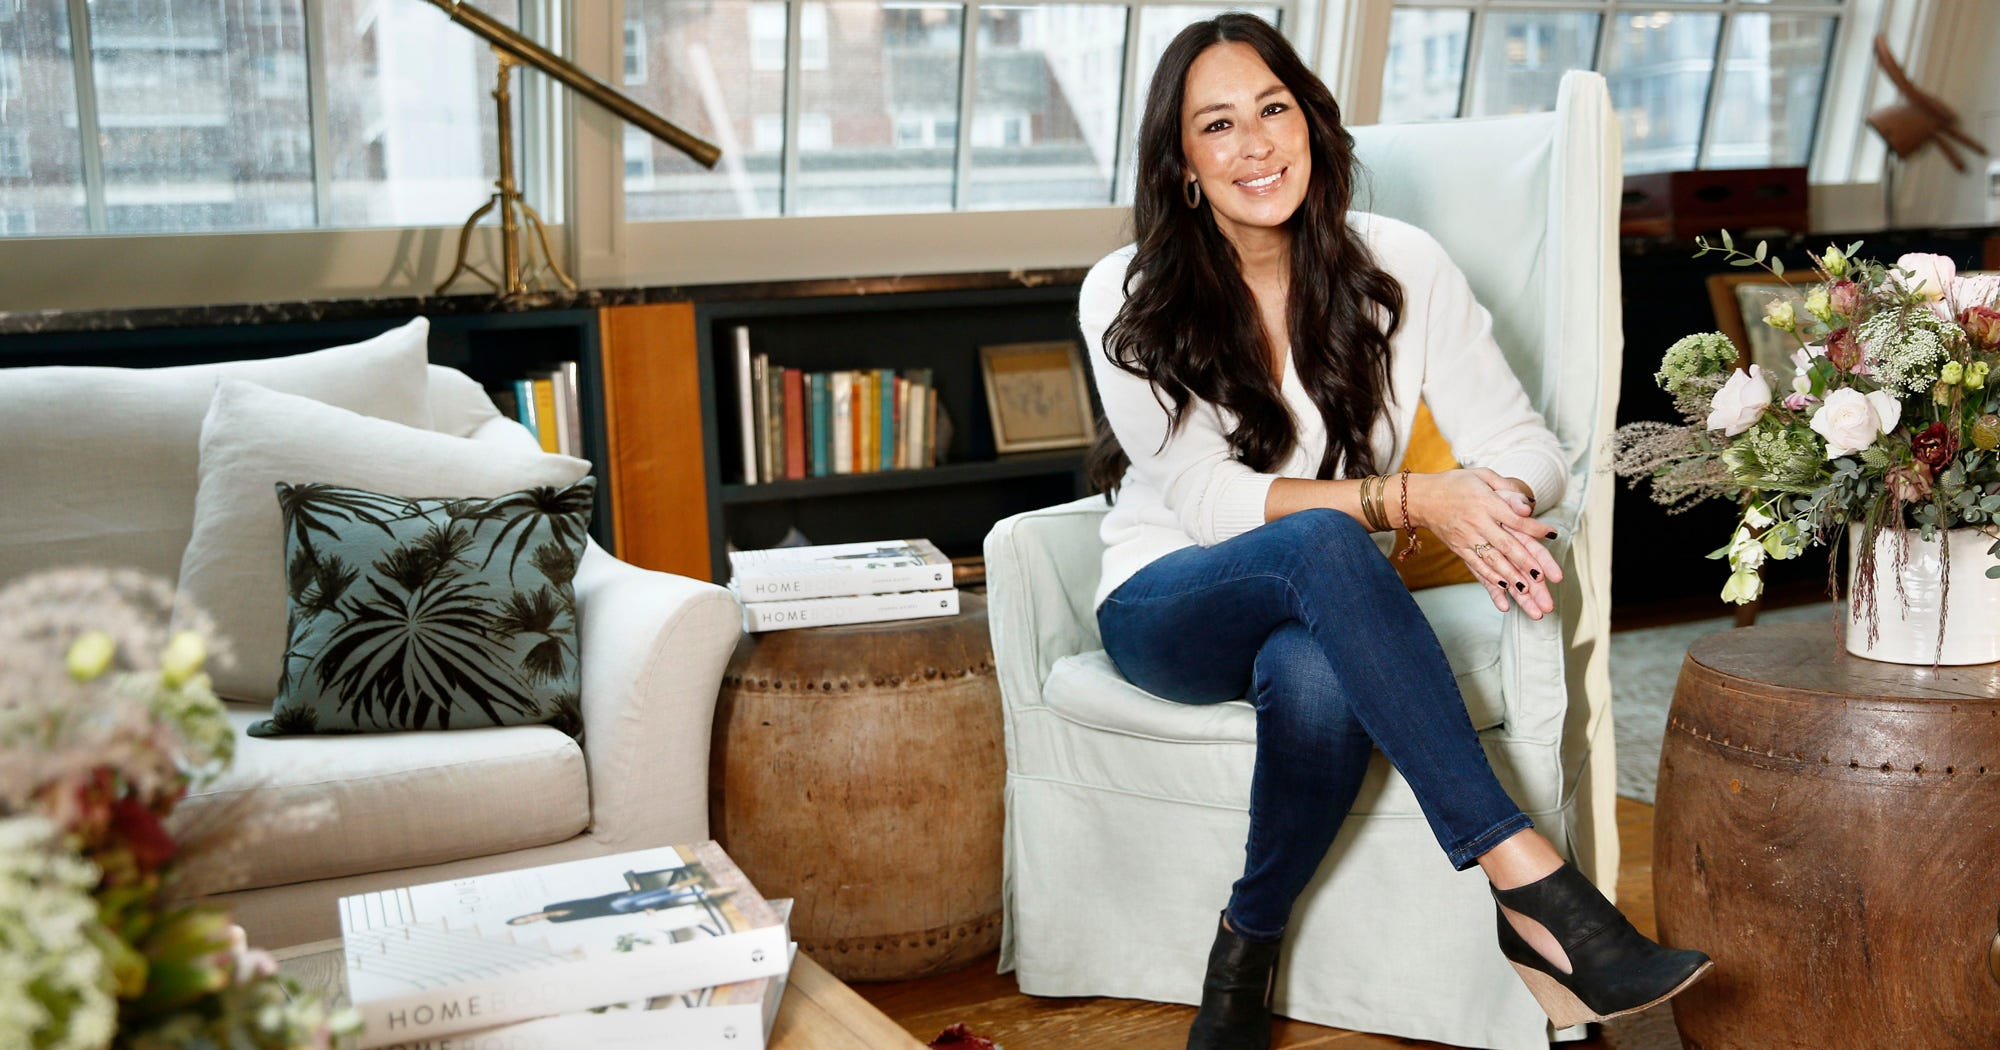 Joanna gaines bedding line is coming to target - Joanna gaines bedding collection ...